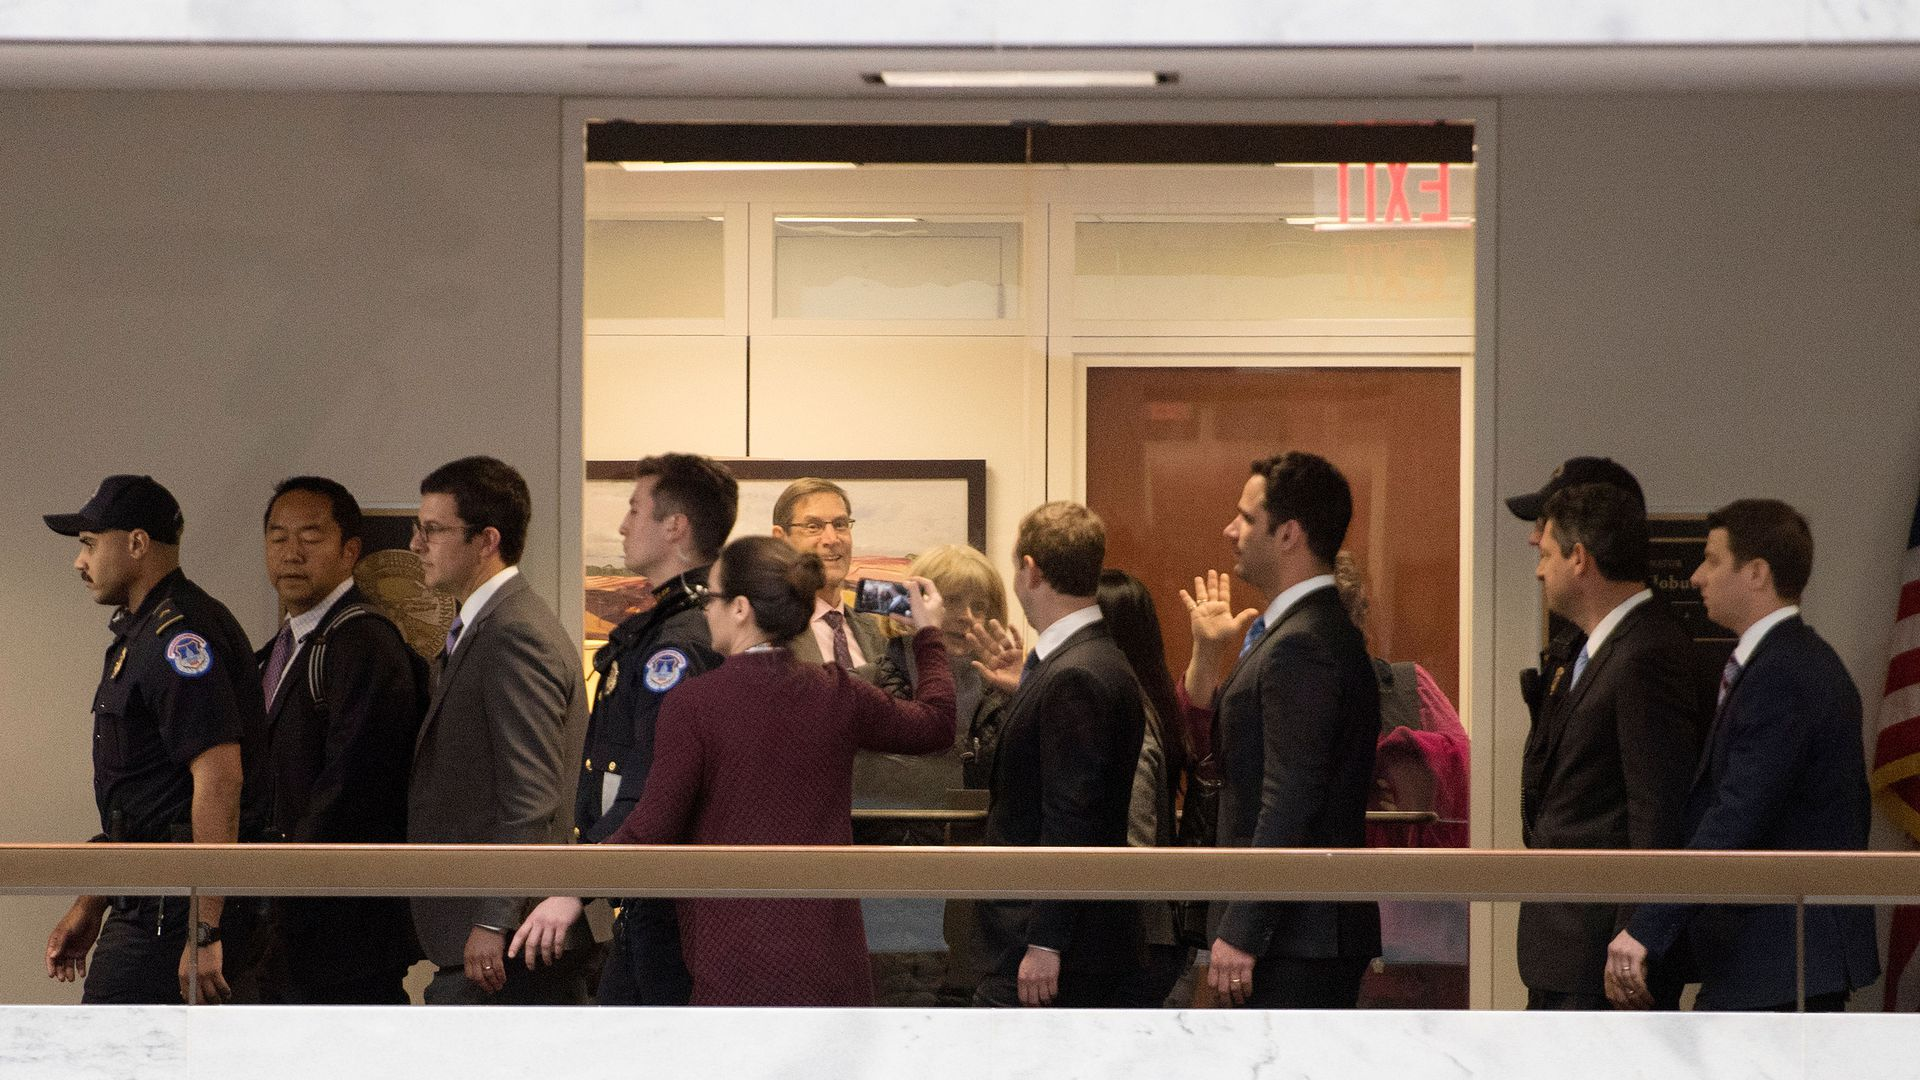 Staffers wave through a glass door at Mark Zuckerberg as he walks by